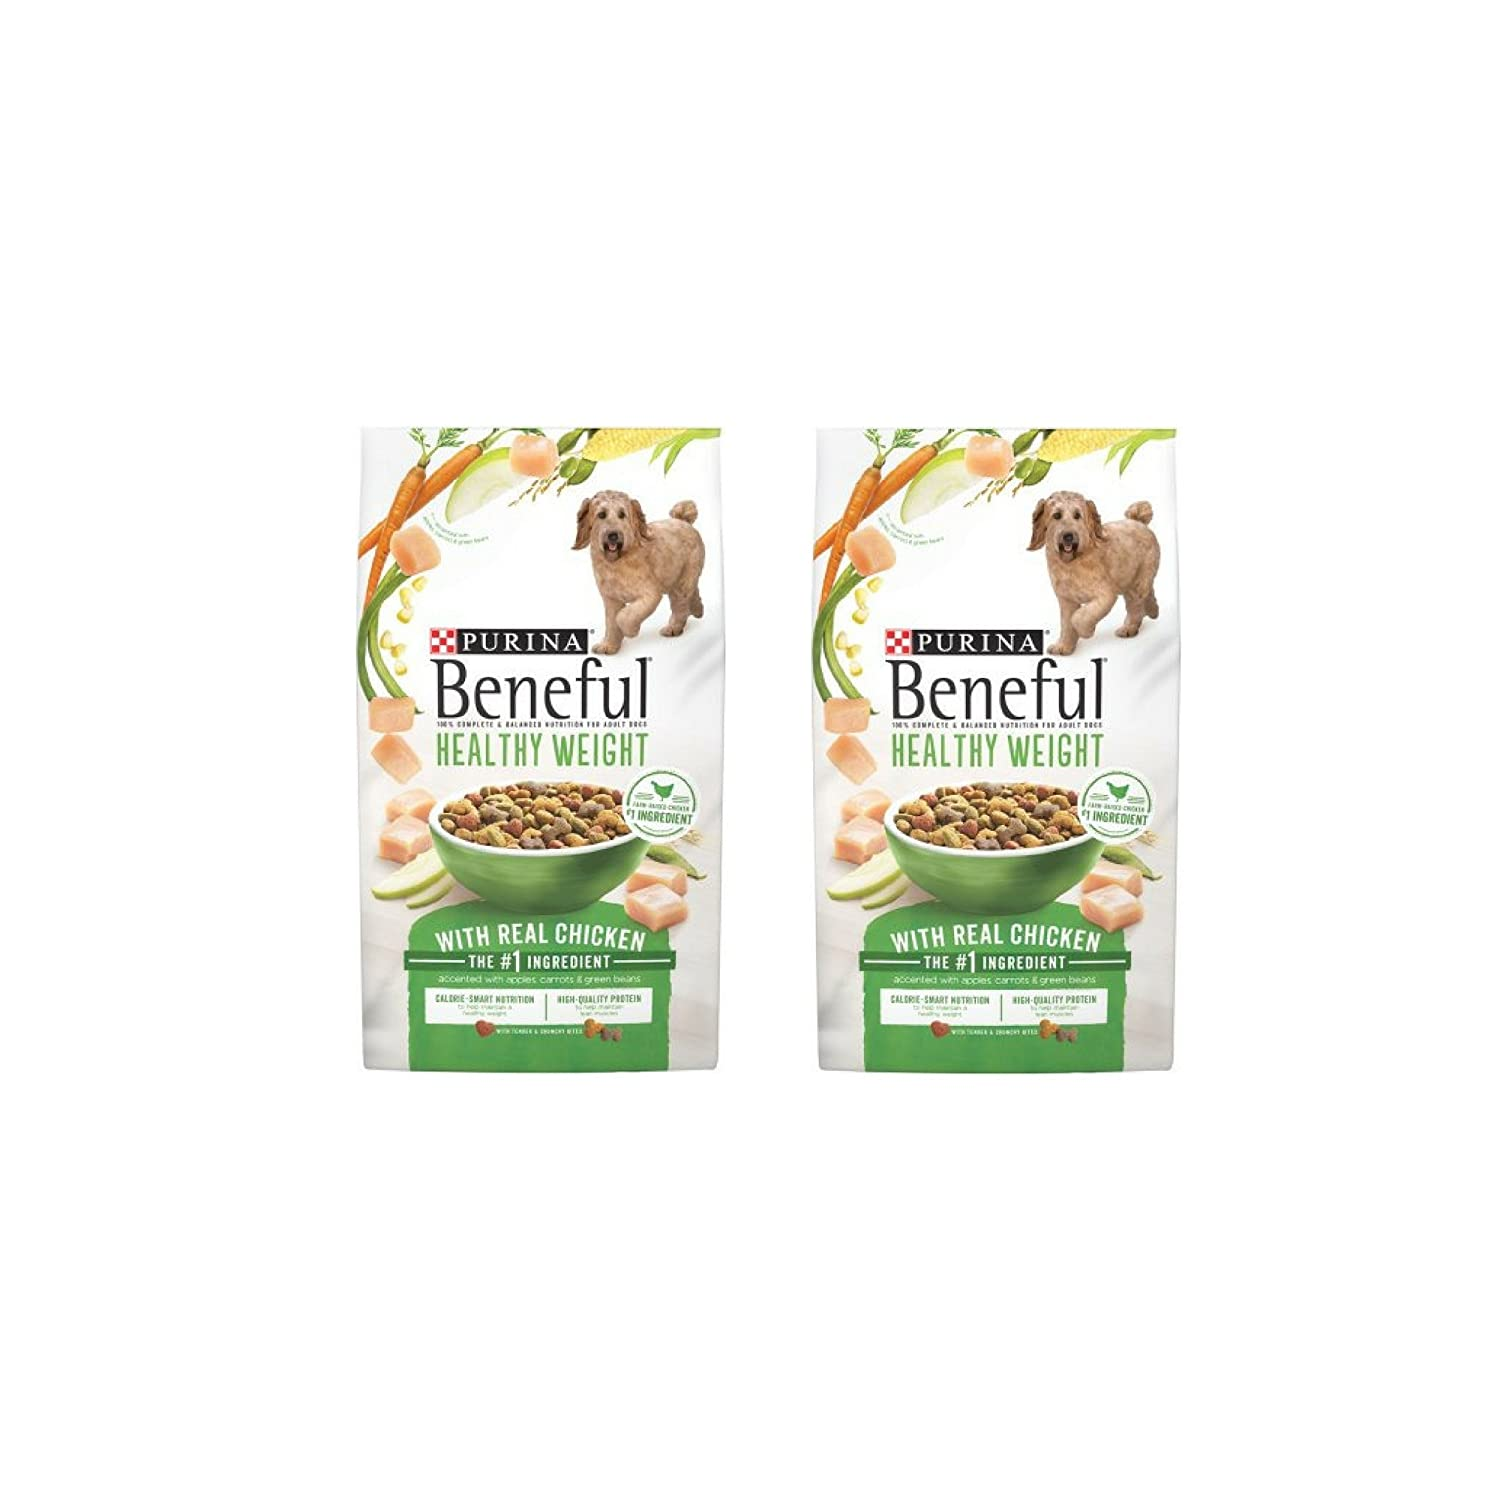 Purina Beneful* Healthy Weight with Real Chicken Adult Dry Dog Food